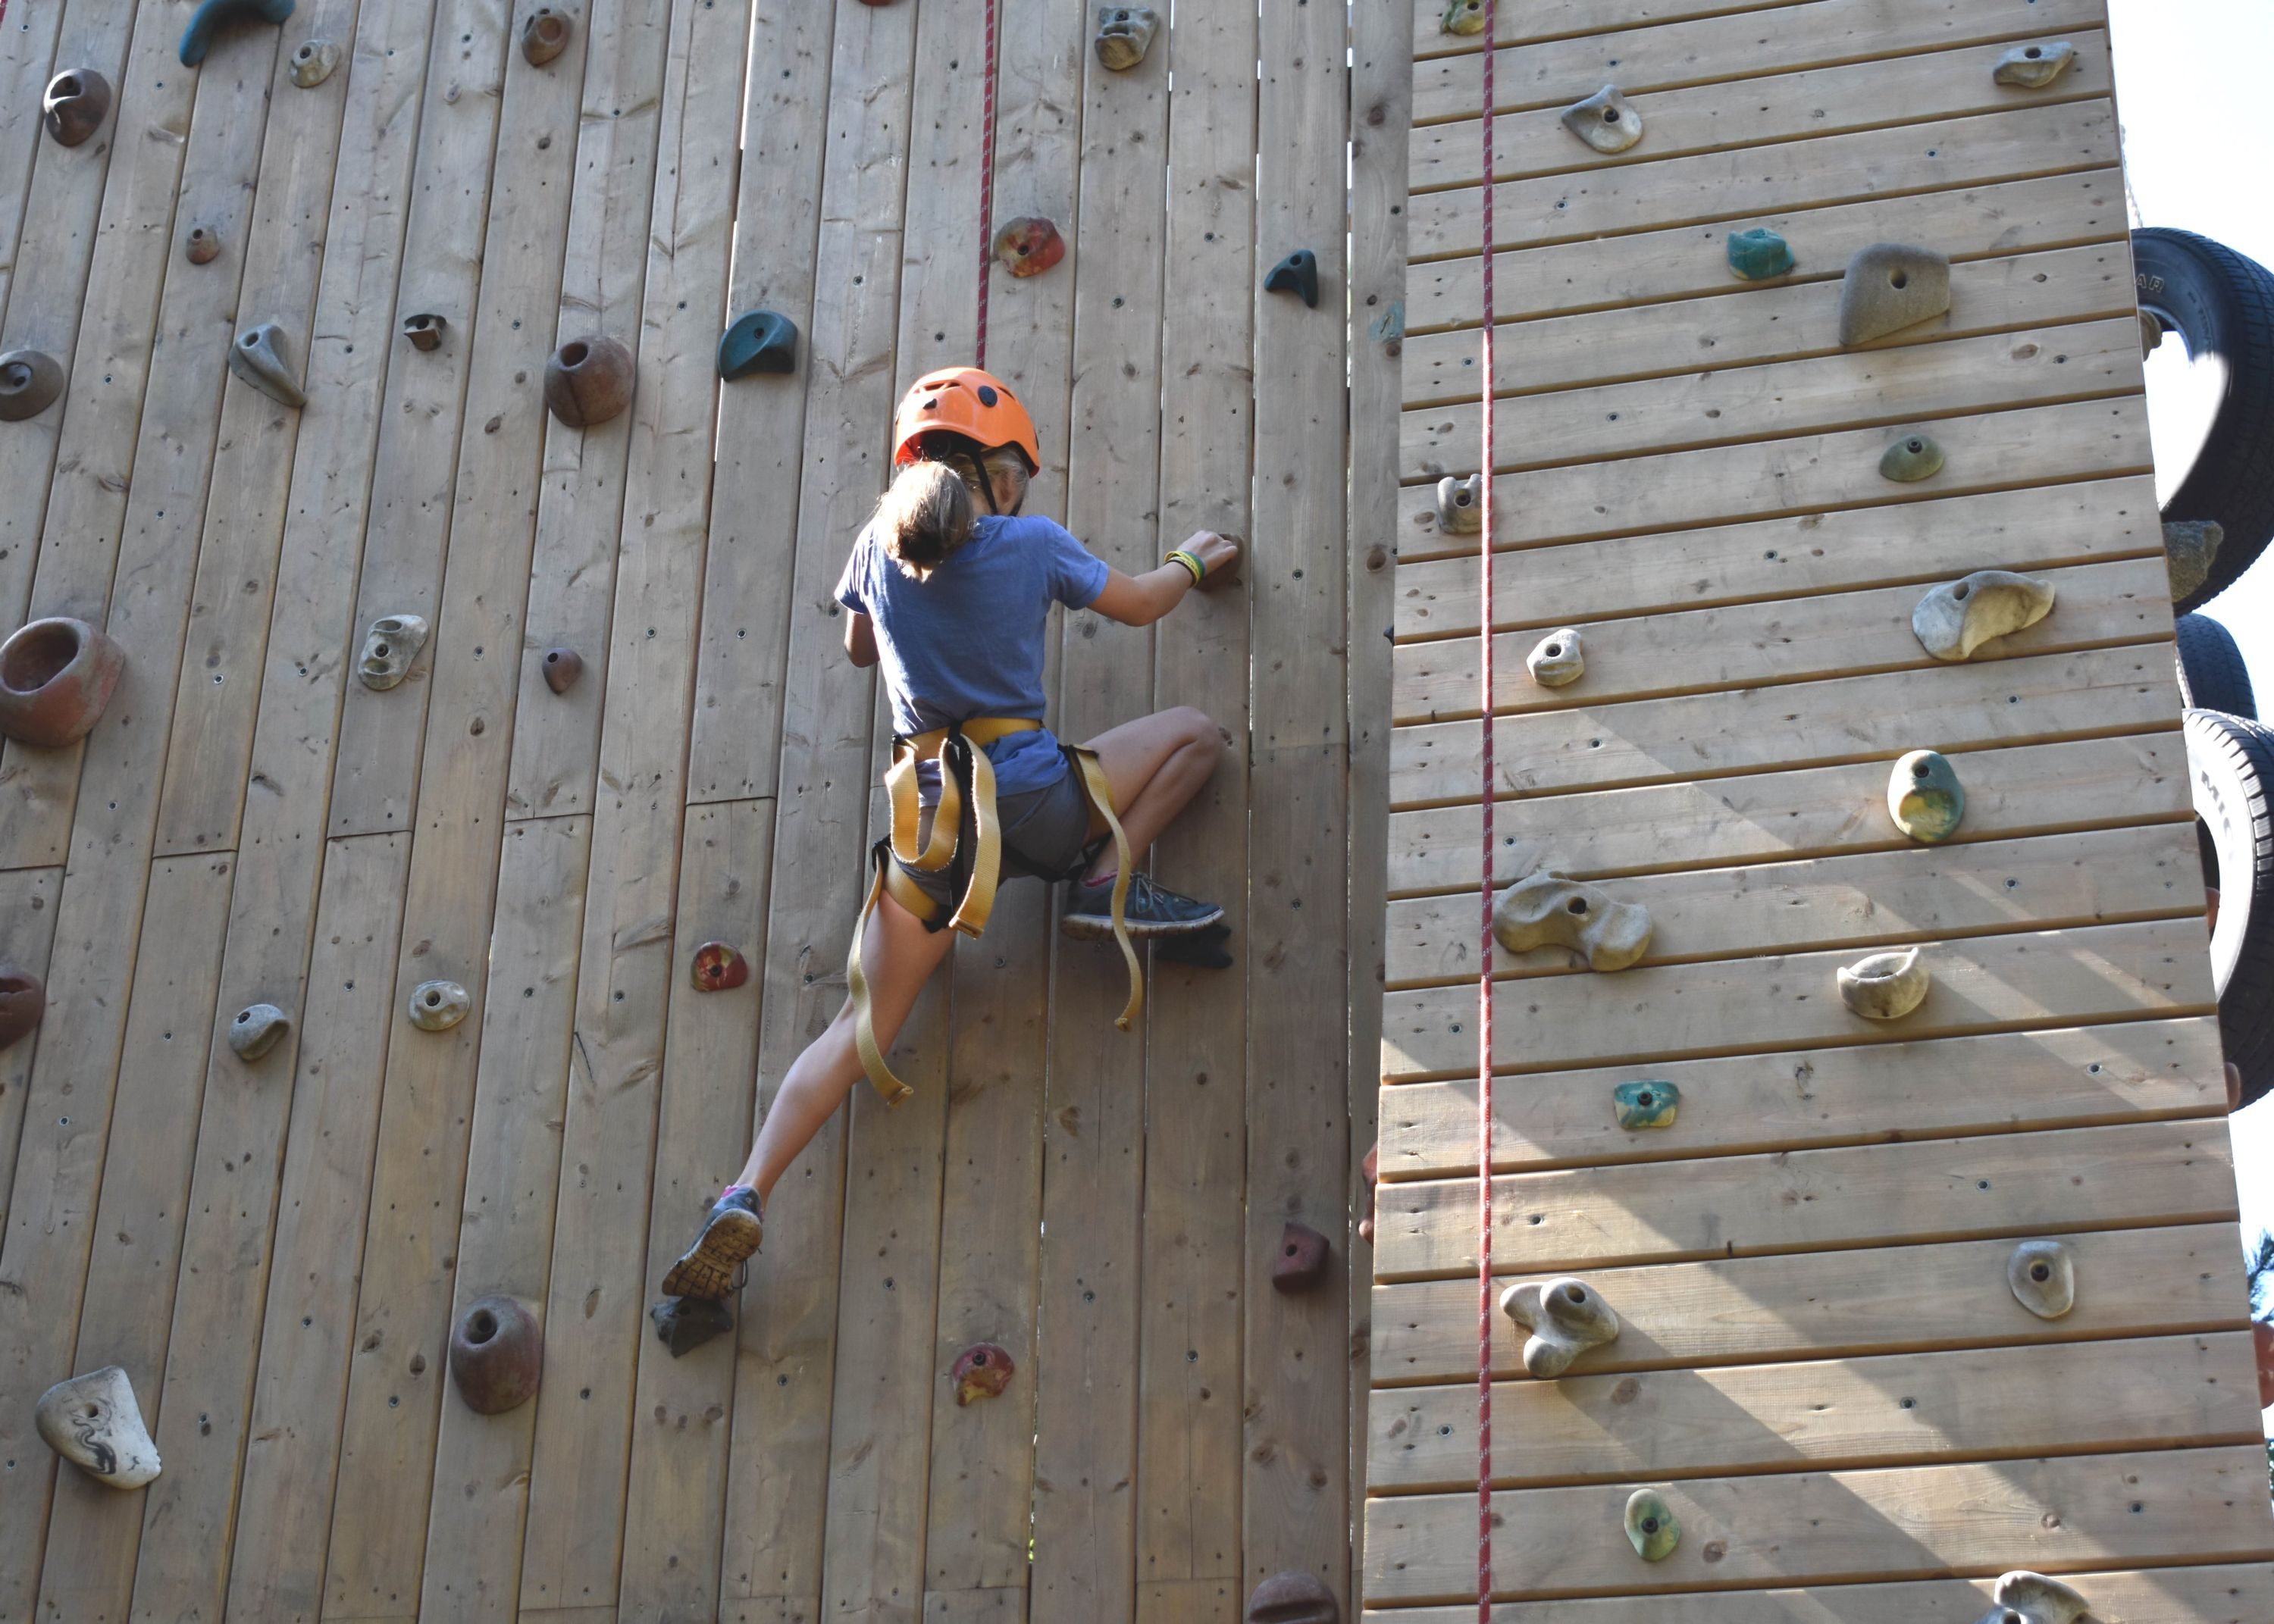 Camper climbing outdoor rock wall at christian adventure summer camp in Haliburton, Ontario